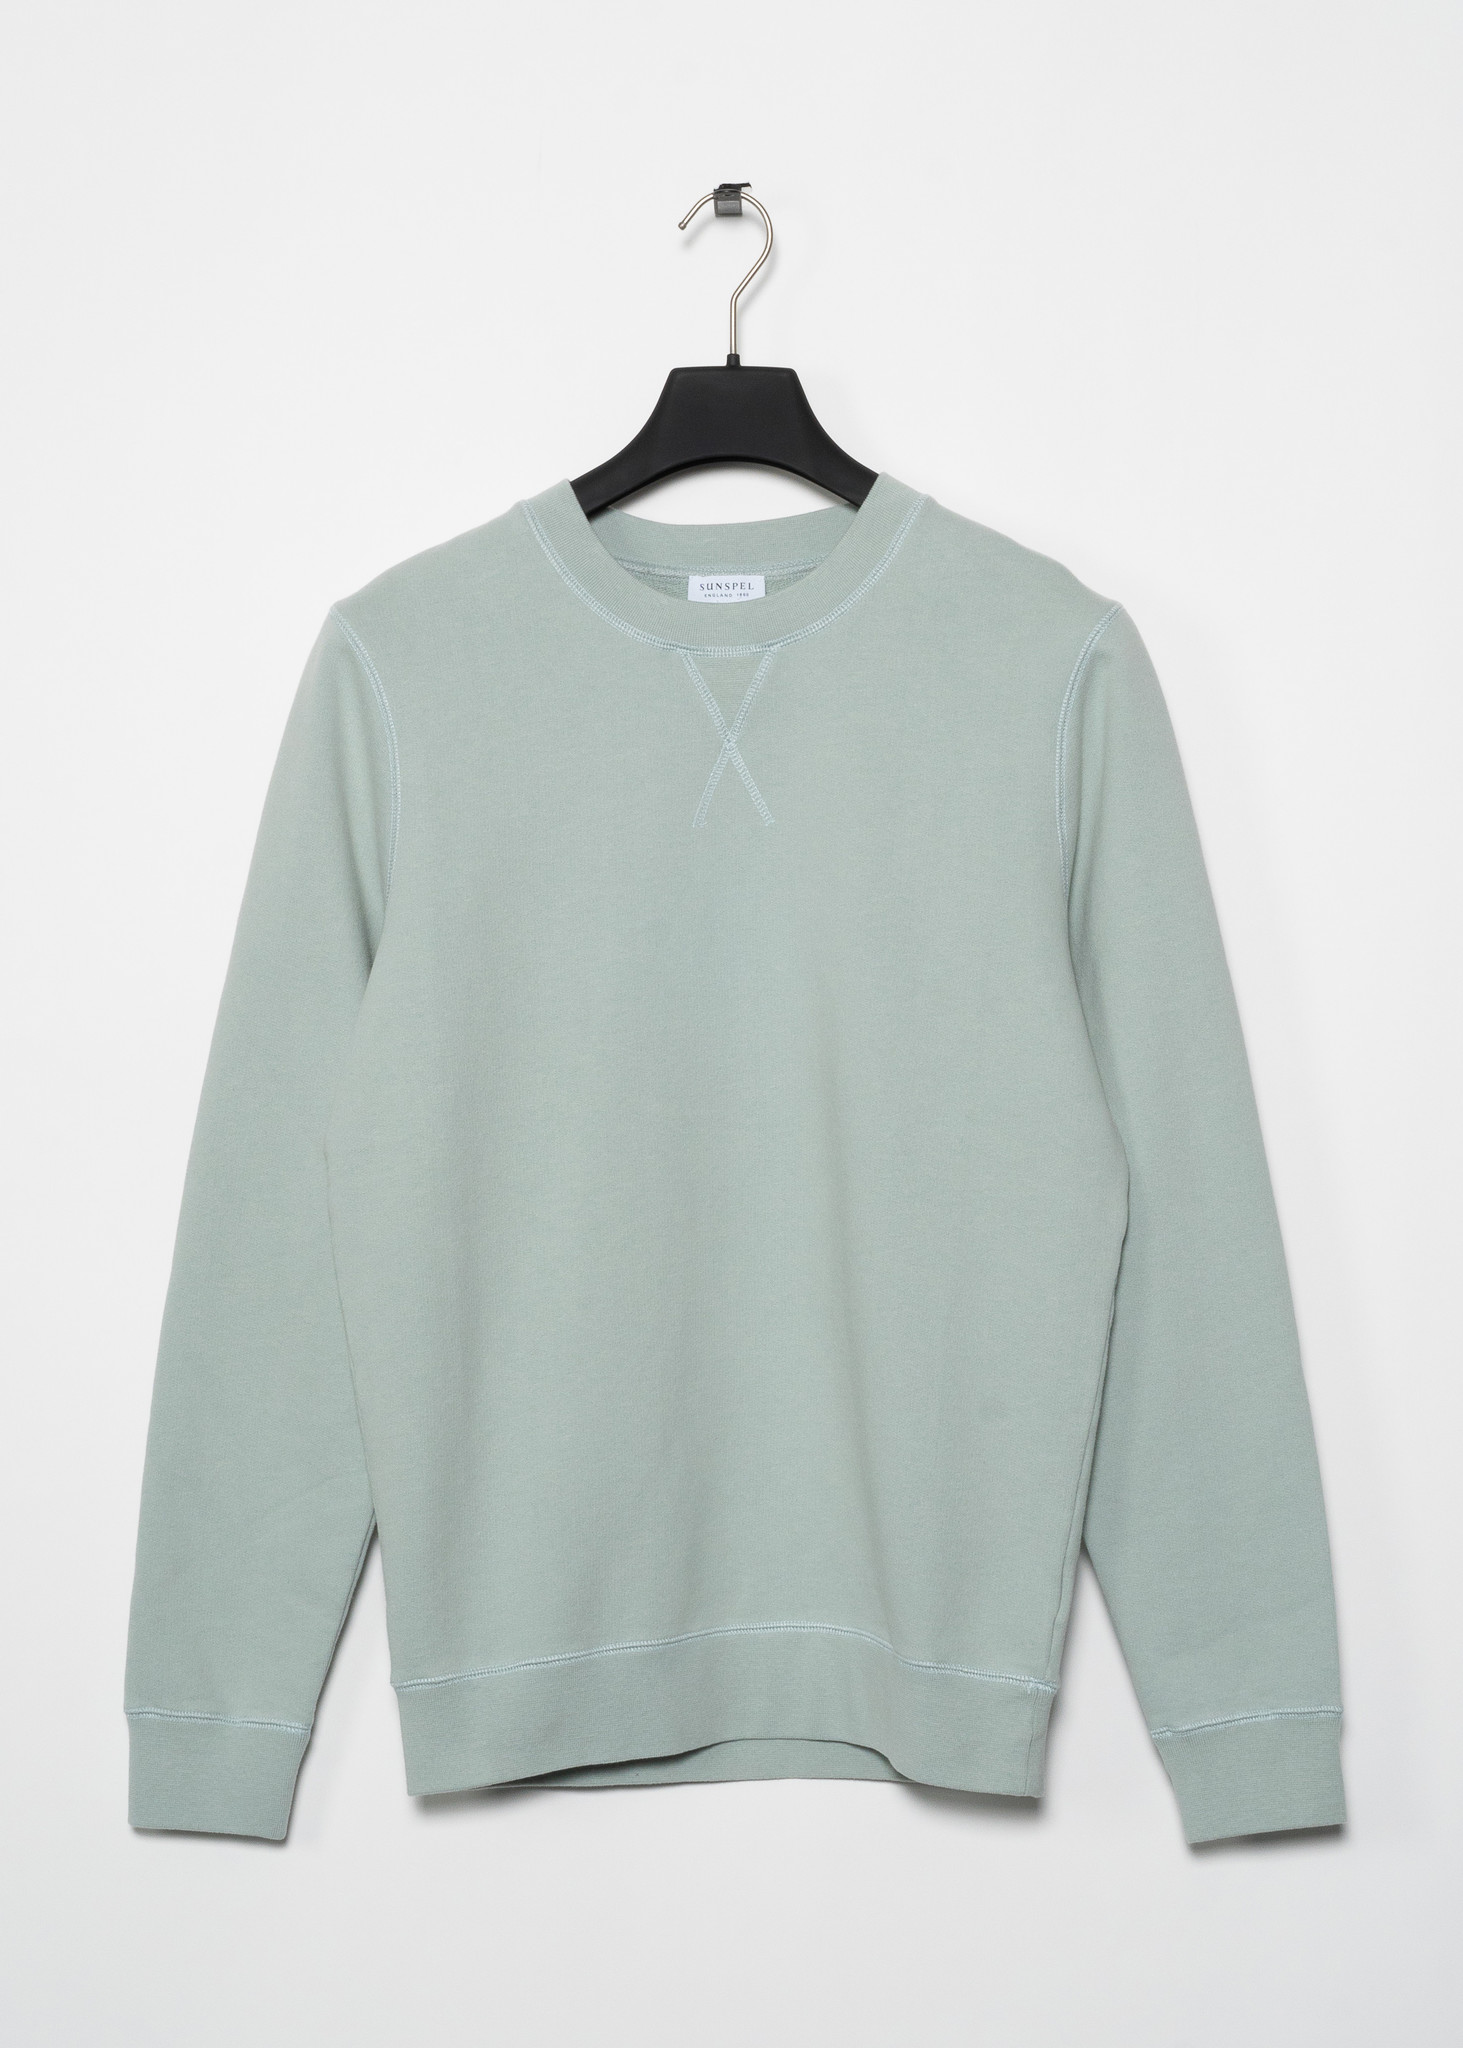 Mint Cotton Loopback Sweater